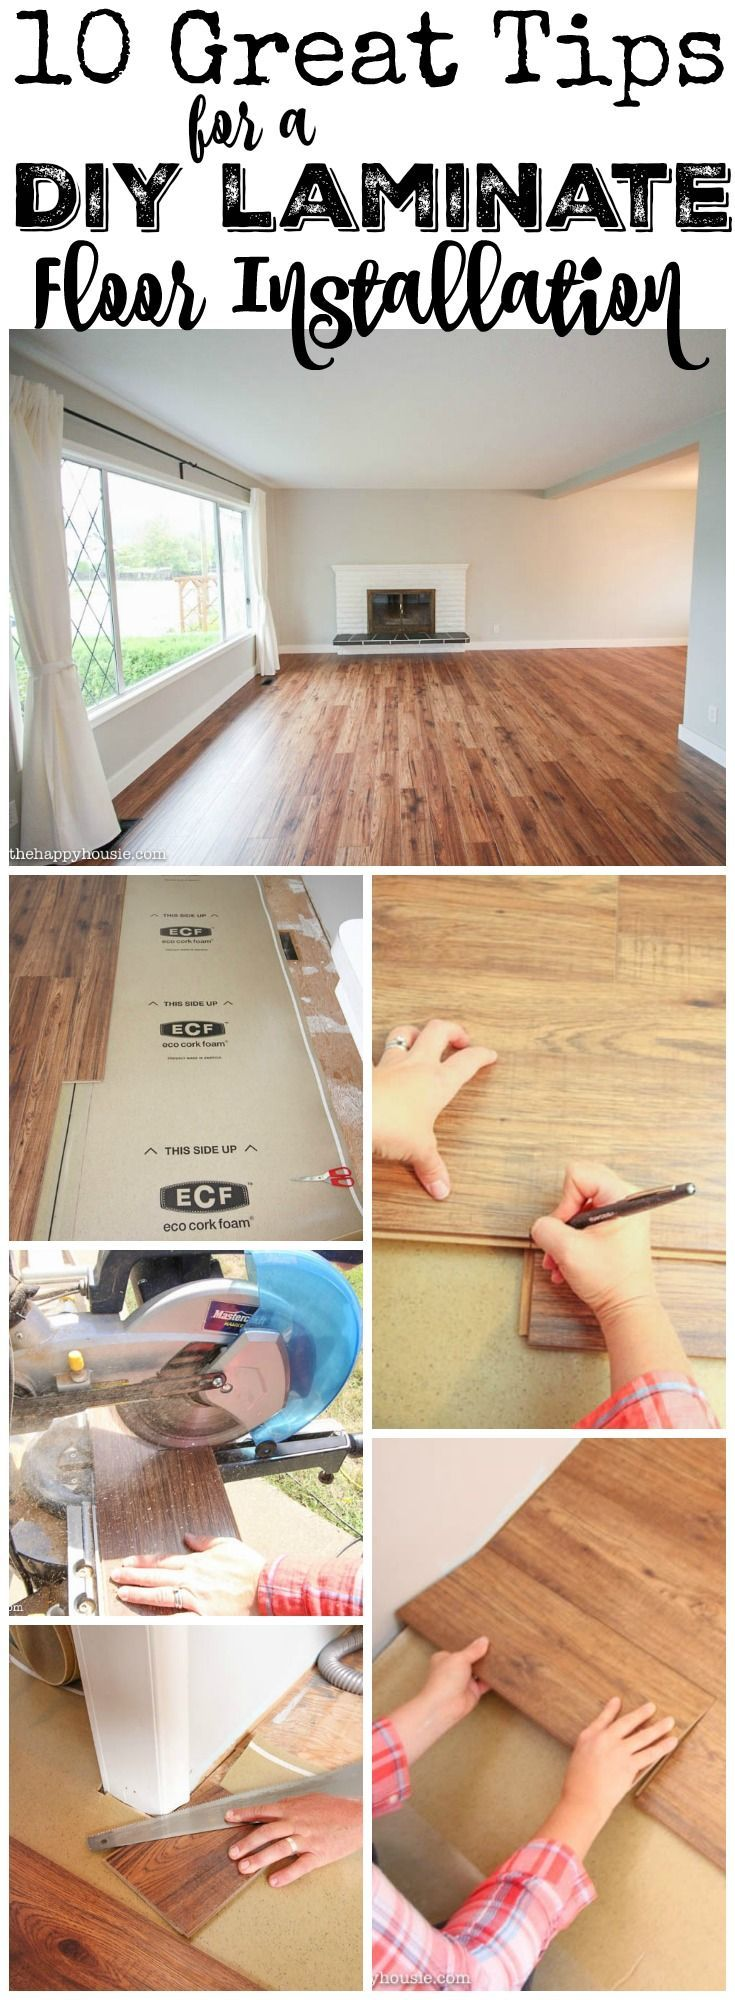 Kitchen Flooring Installation 17 Best Ideas About Flooring Installation On Pinterest Wood